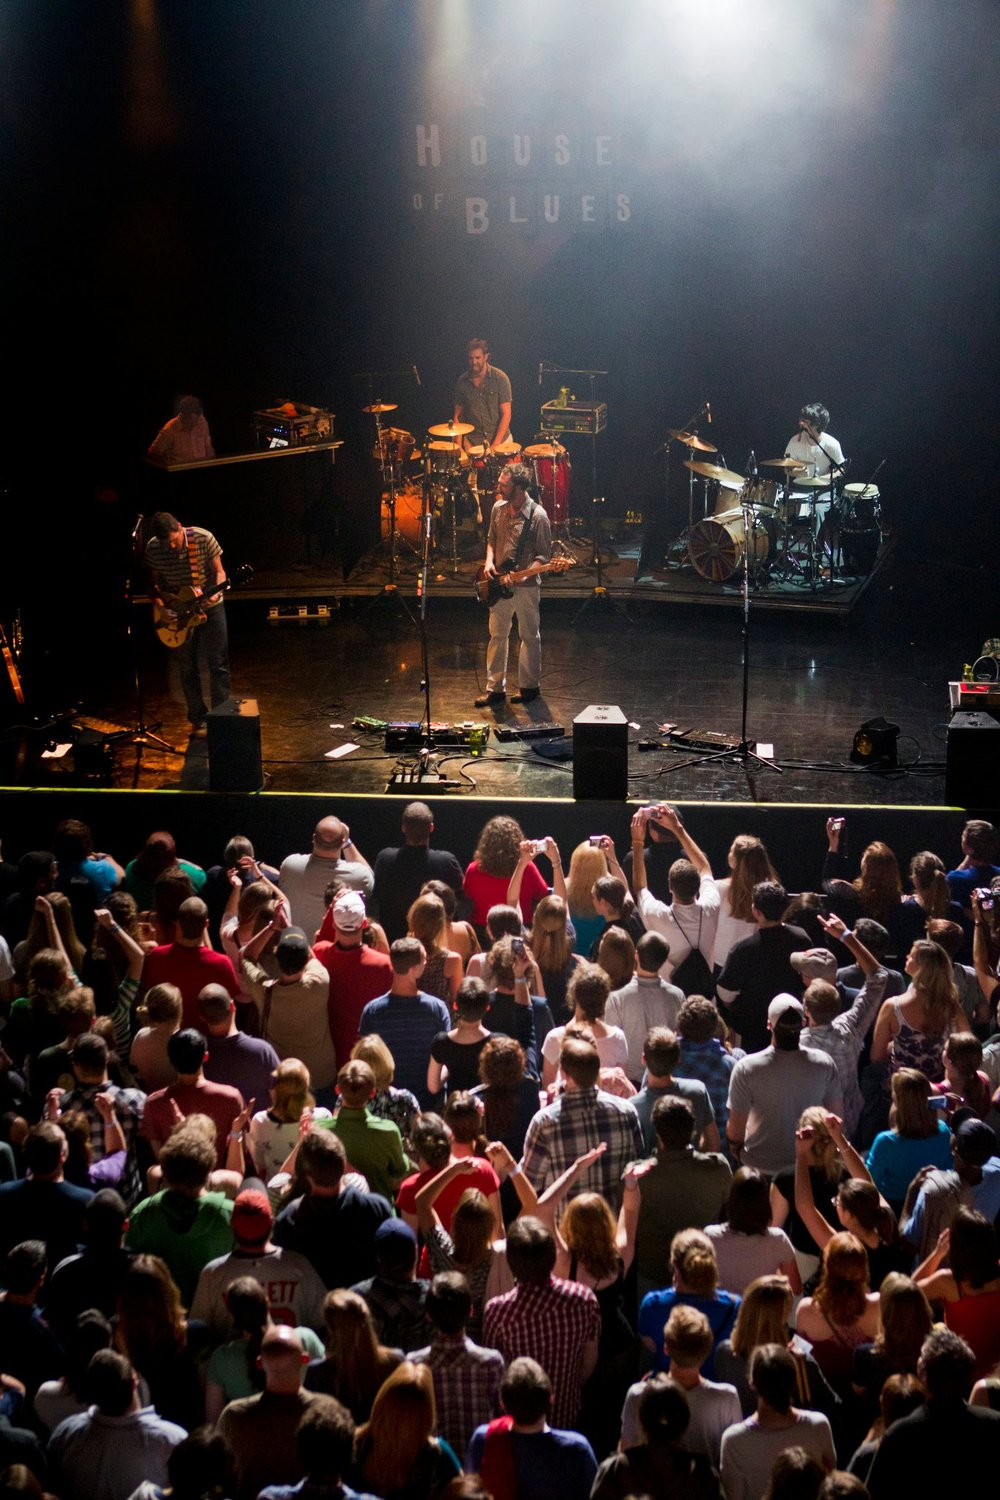 Guster-house of Blues crowd.jpg